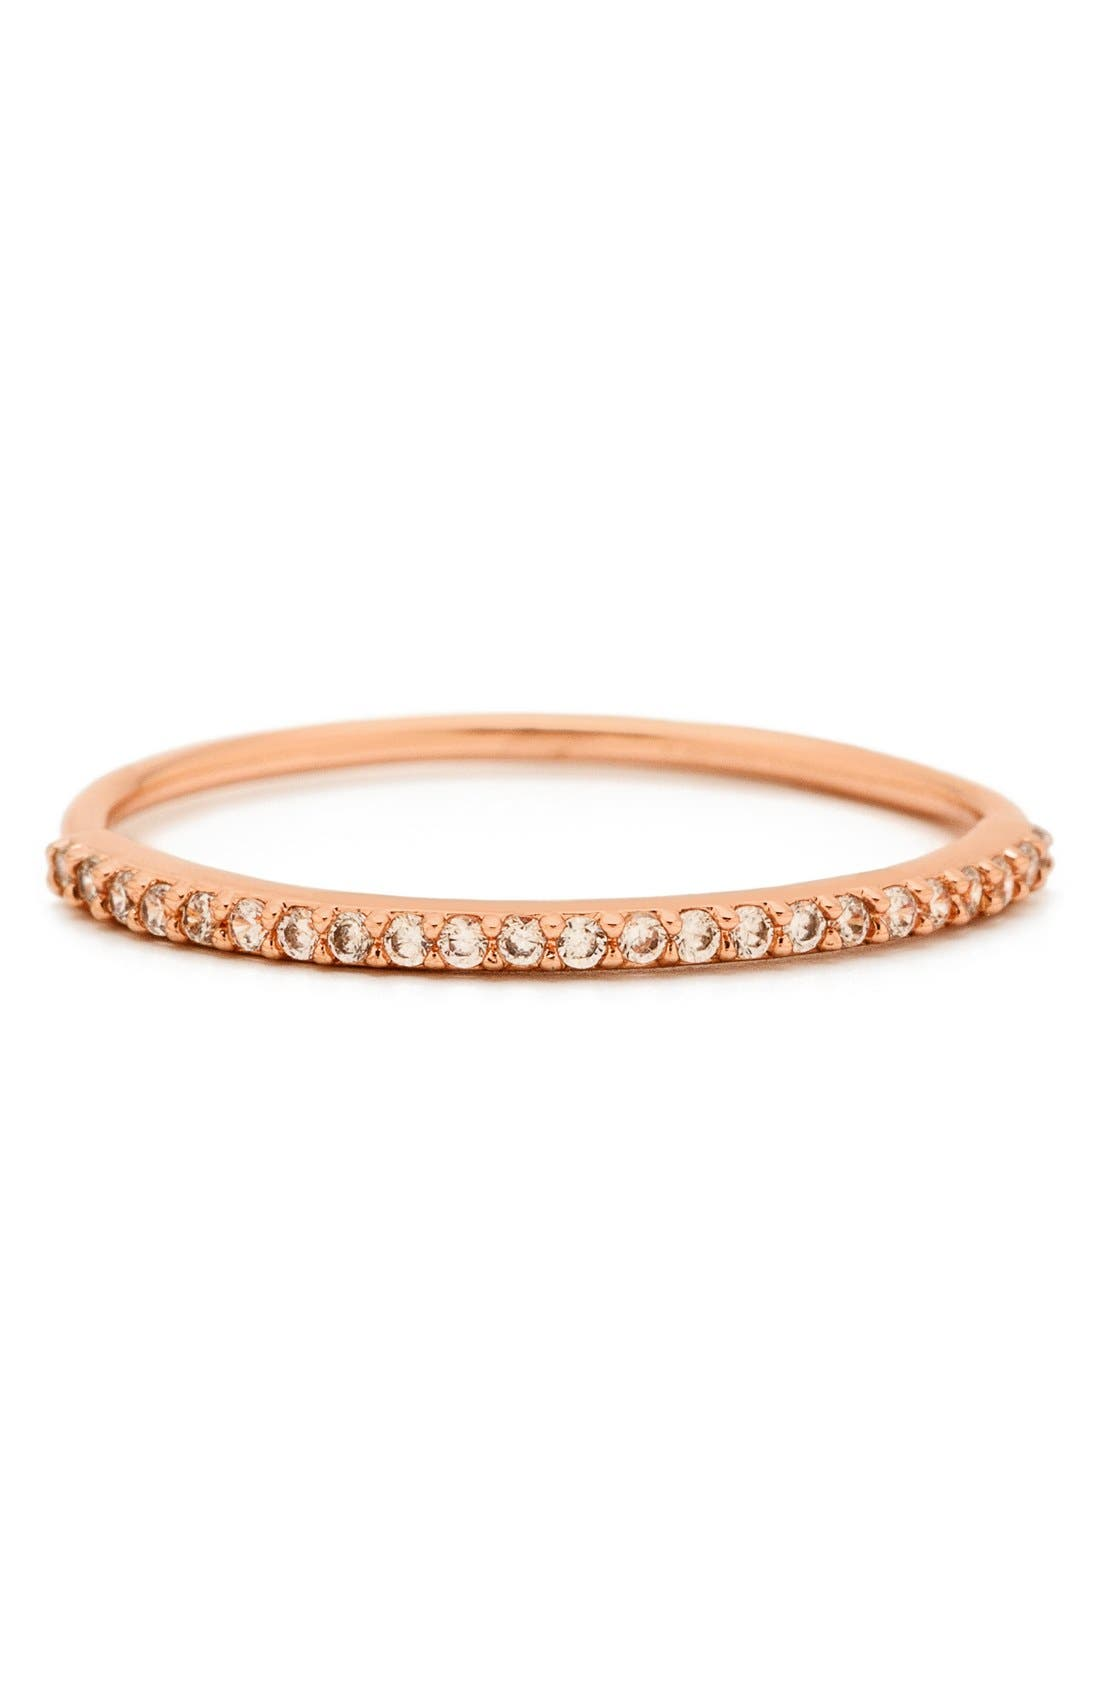 gorjana 'Shimmer' Cubic Zirconia Bangle